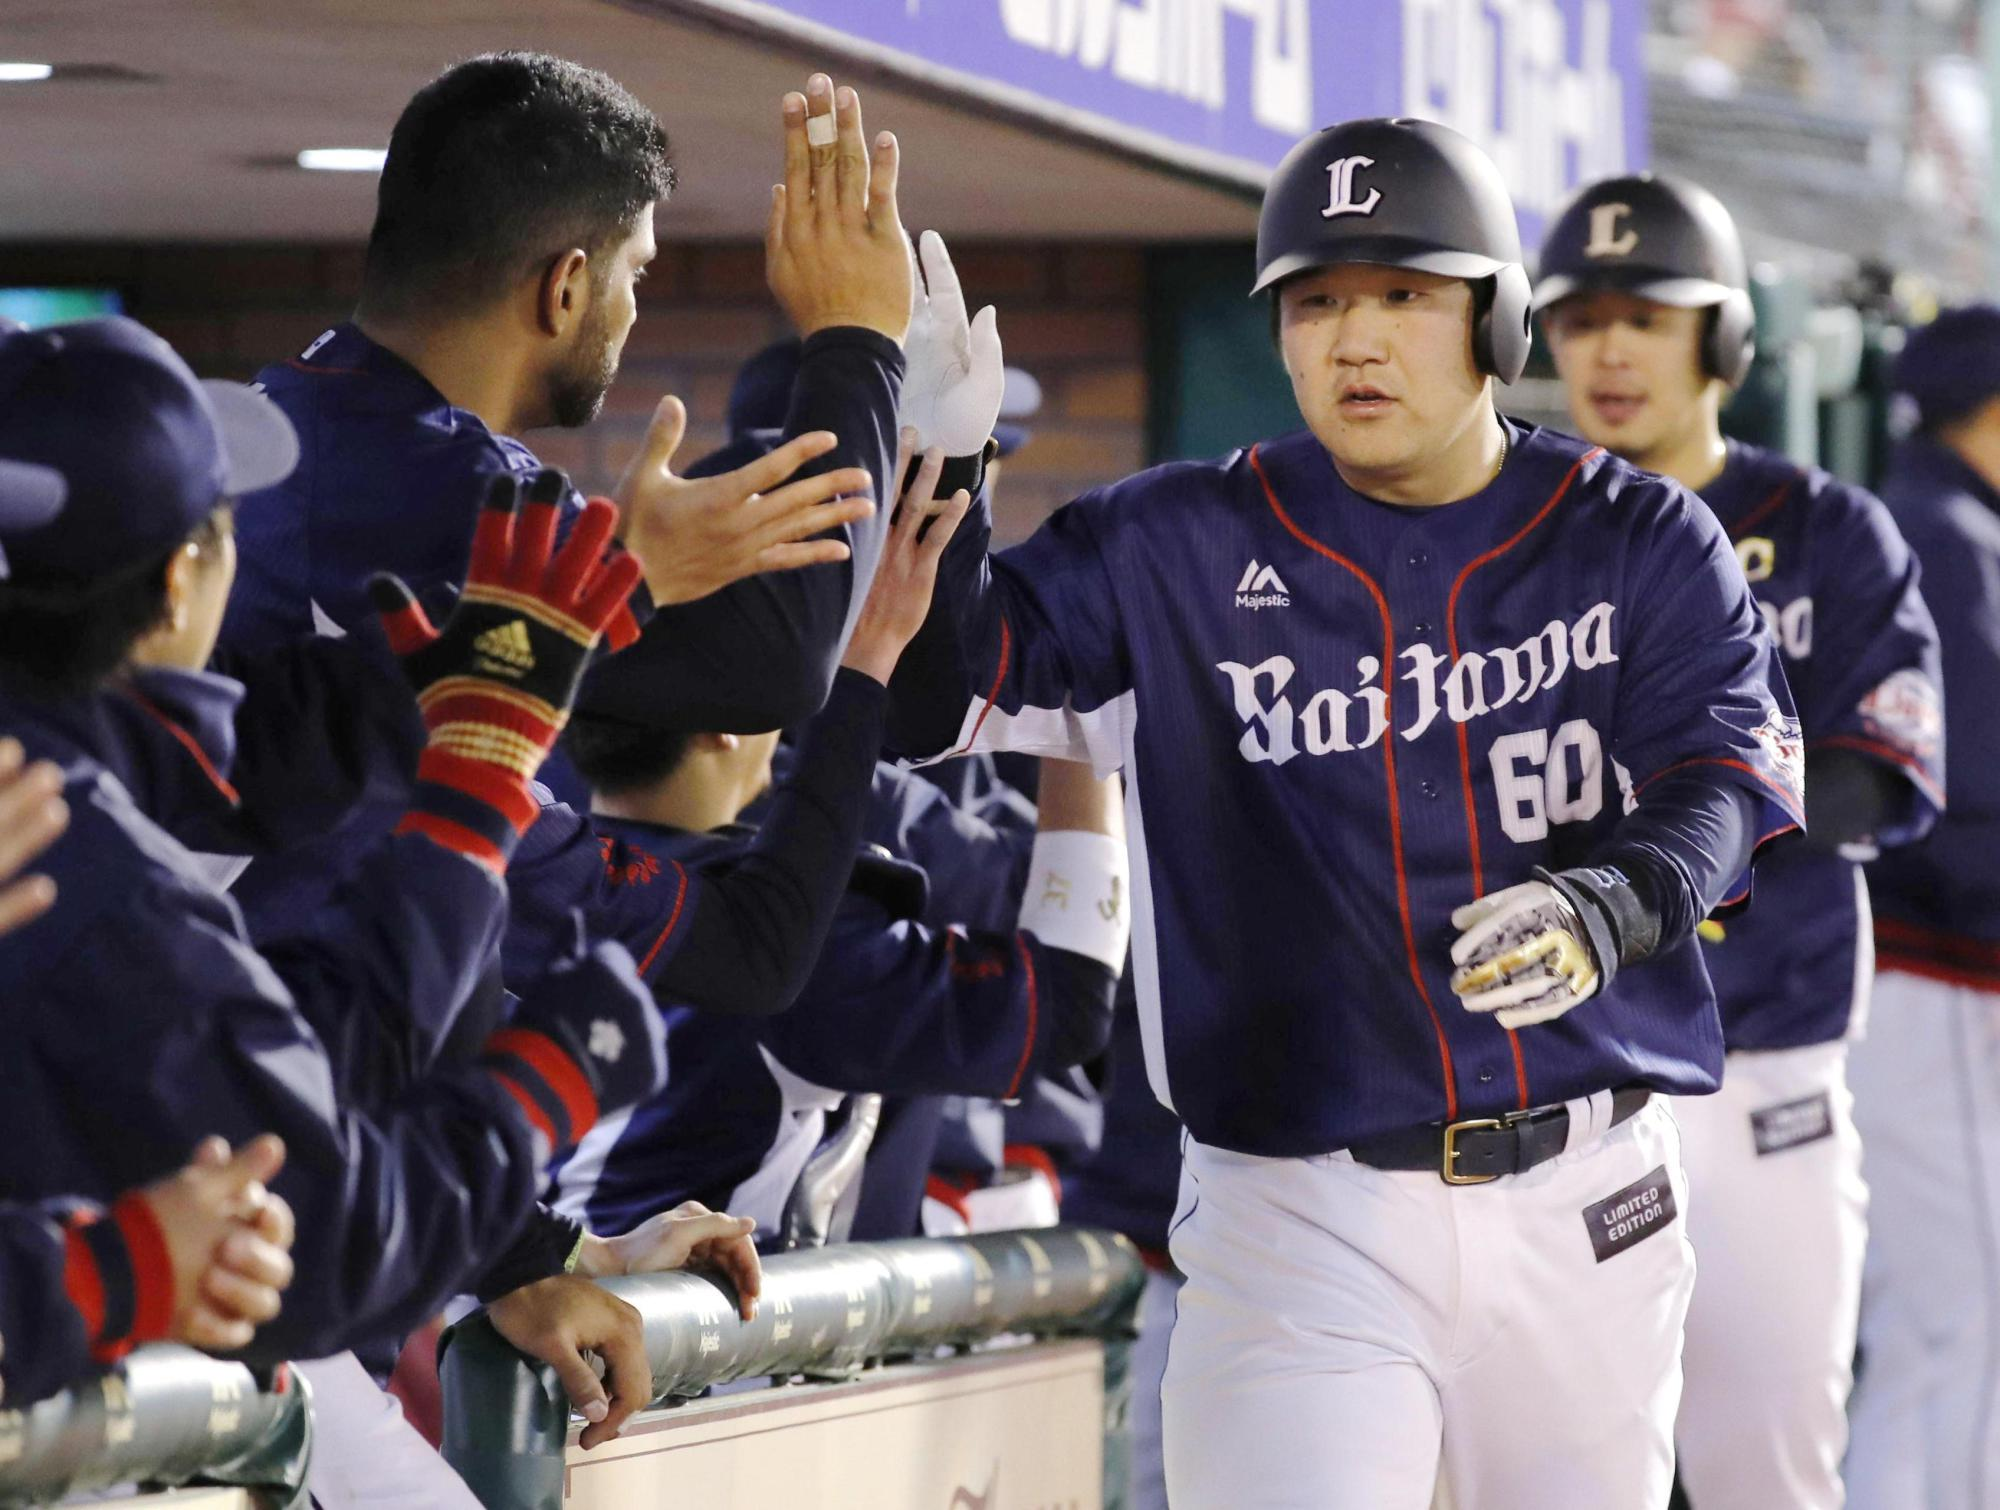 The Lions' Takeya Nakamura is congratulated after hitting a three-run home run during the ninth inning on Wednesday. | KYODO